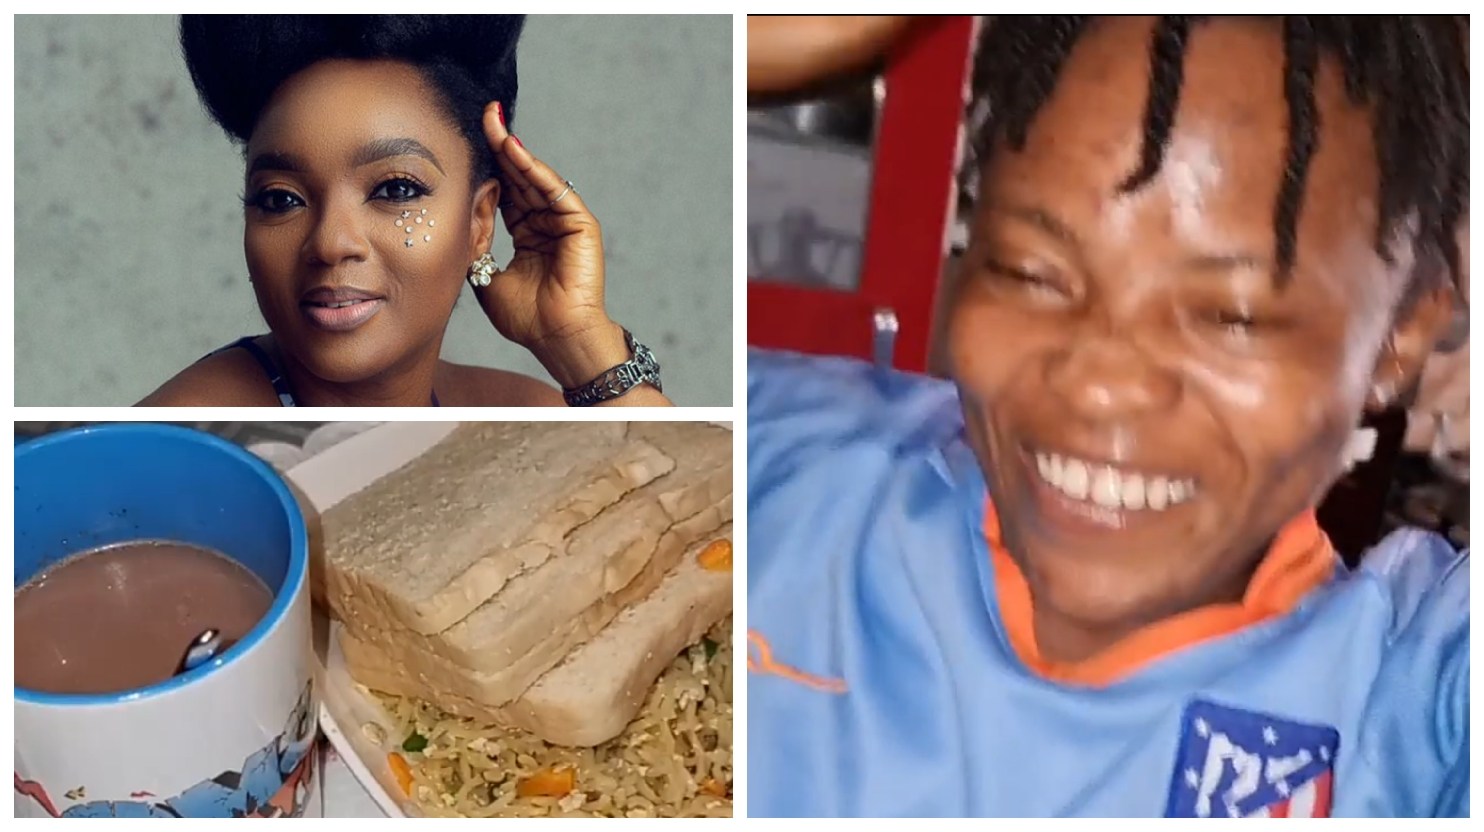 Chioma Chukwuka should have taught her maid how to prepare a healthy meal rather than disgracing her publicly (video)